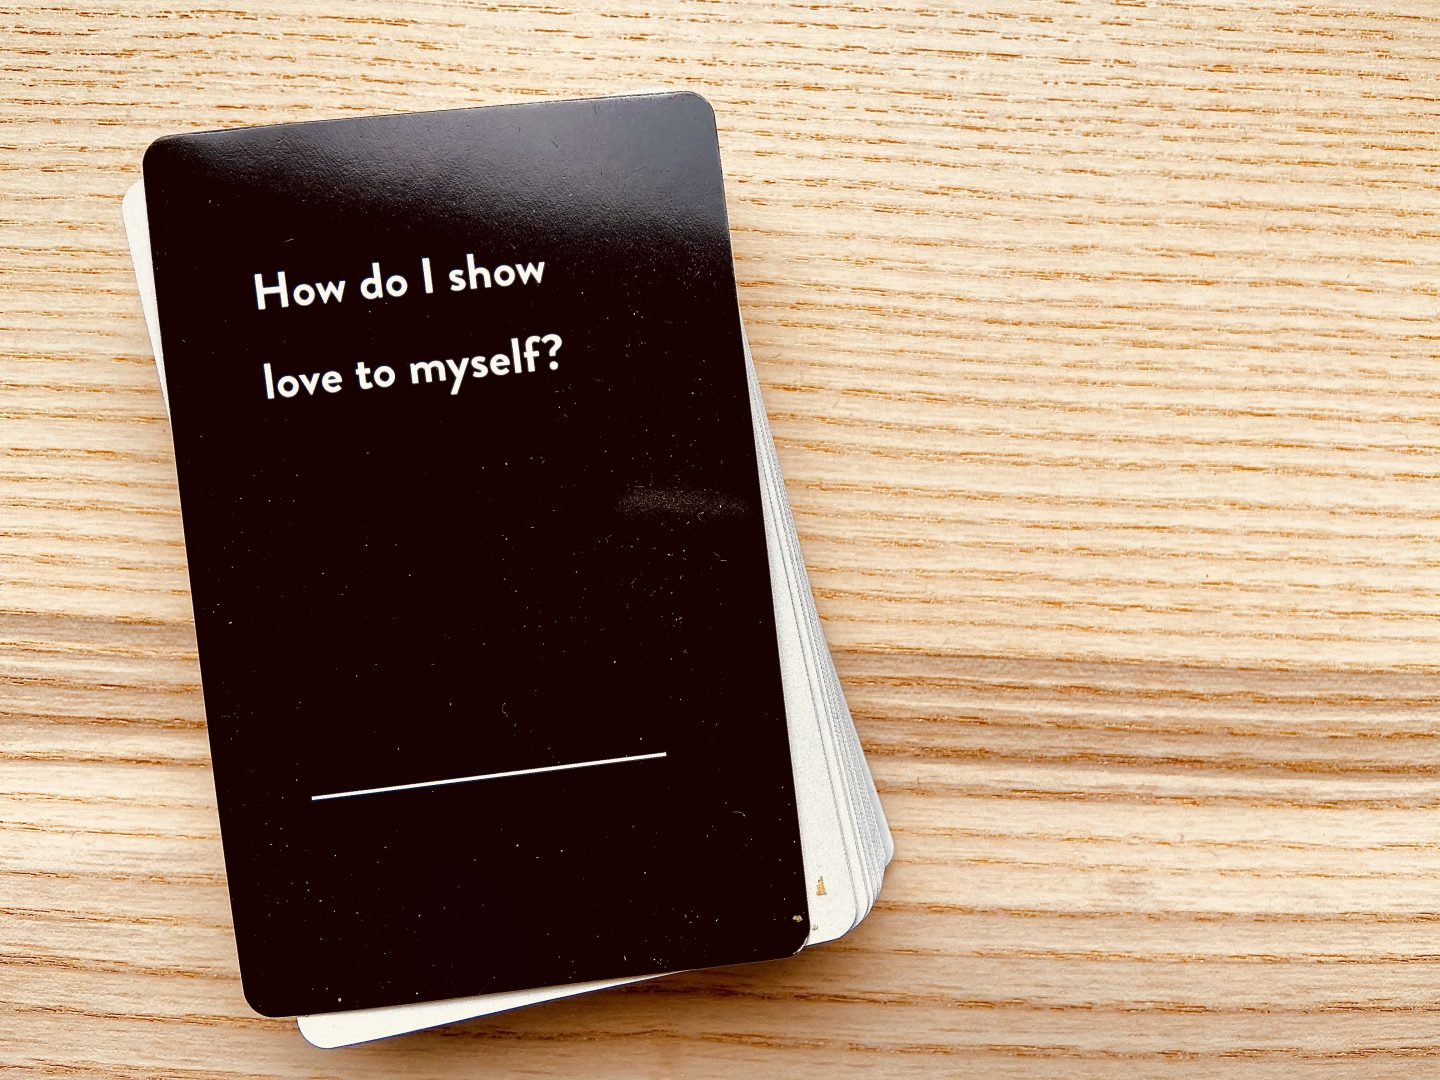 How do I show love to myself?